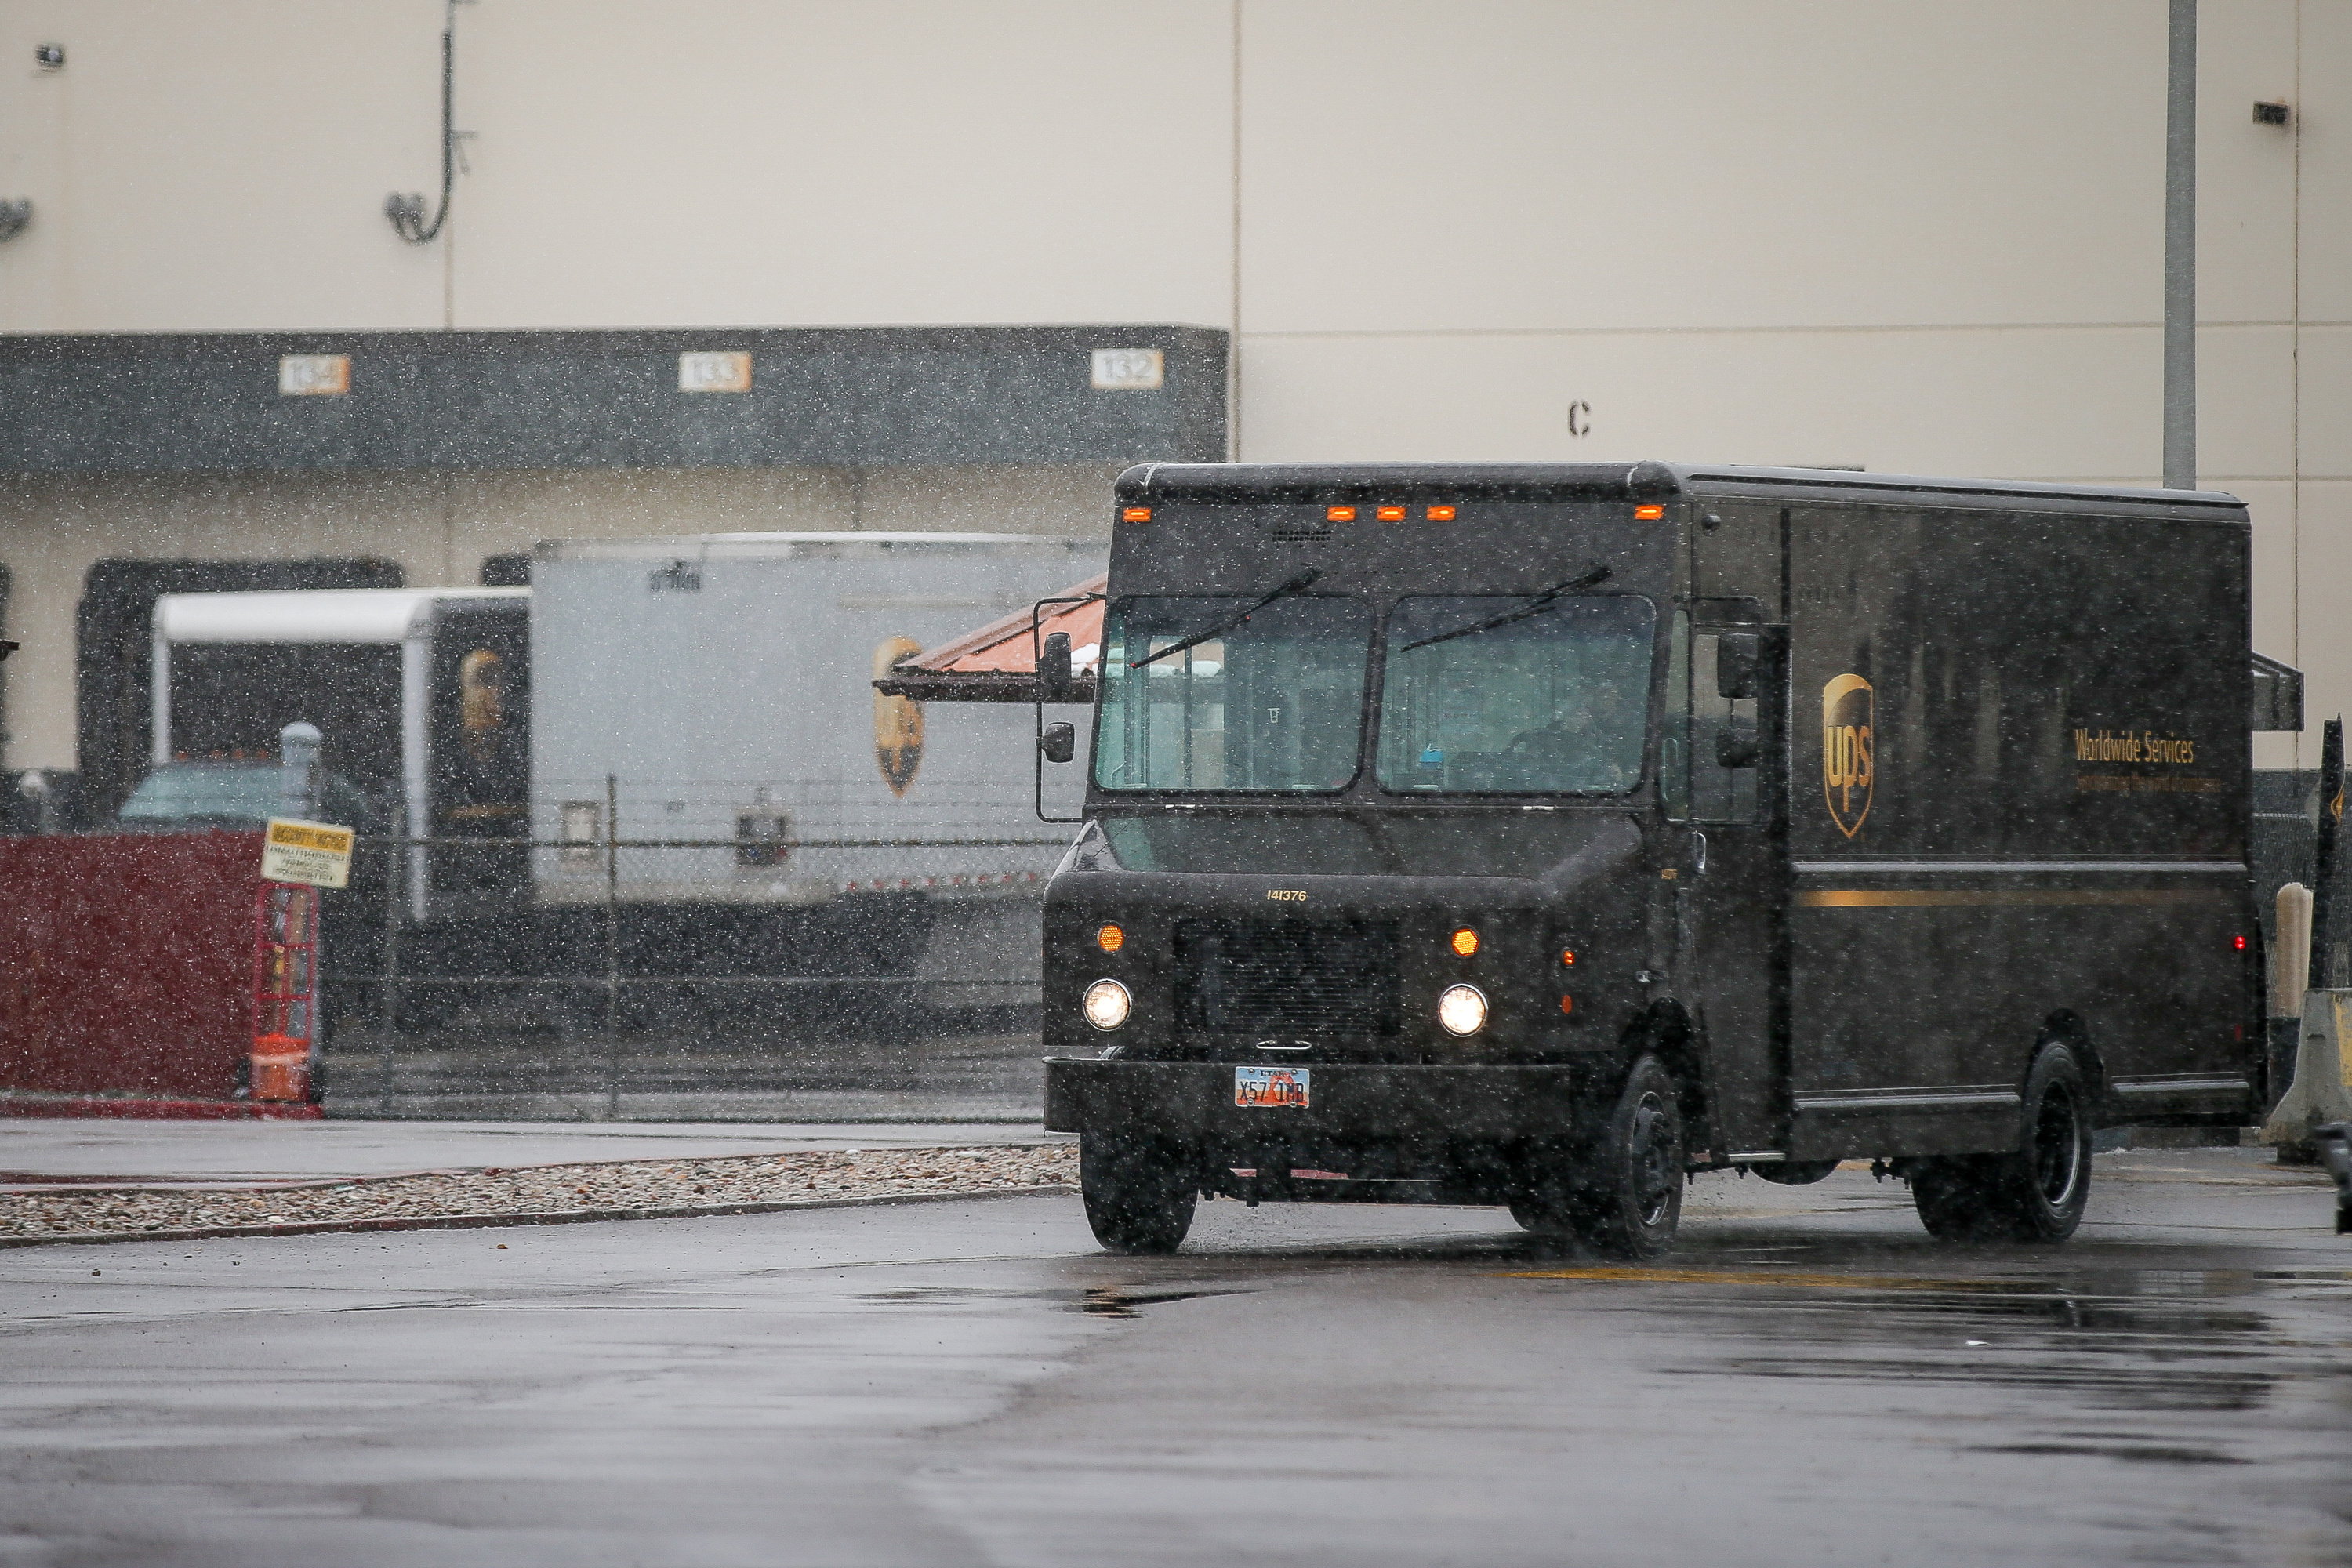 A truck leaves a UPS facility in West Valley City, Utah, on Wednesday, Nov. 27, 2019.